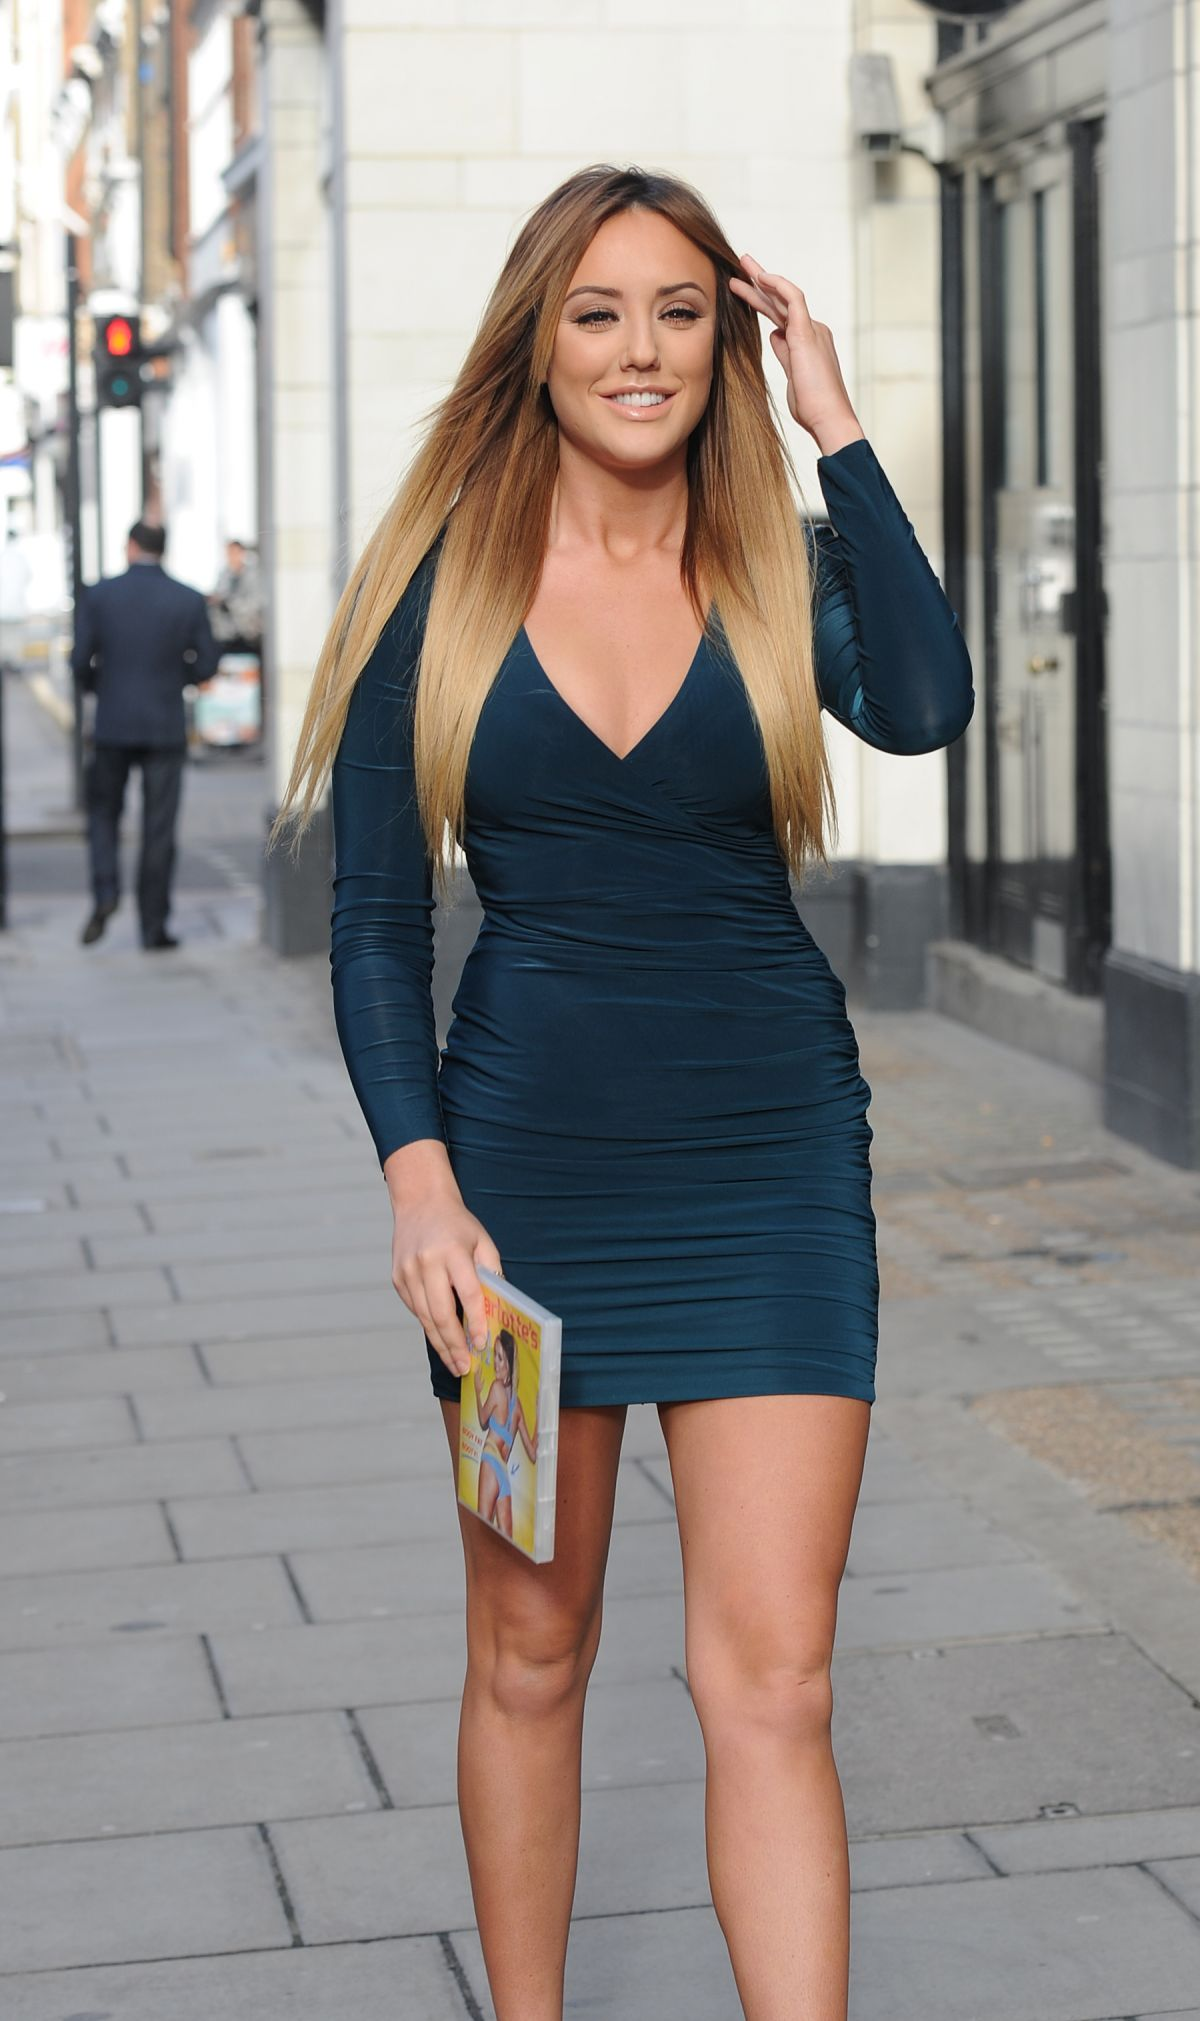 CHARLOTTE CROSBY Promotes Her Fitness DVD in London 0104